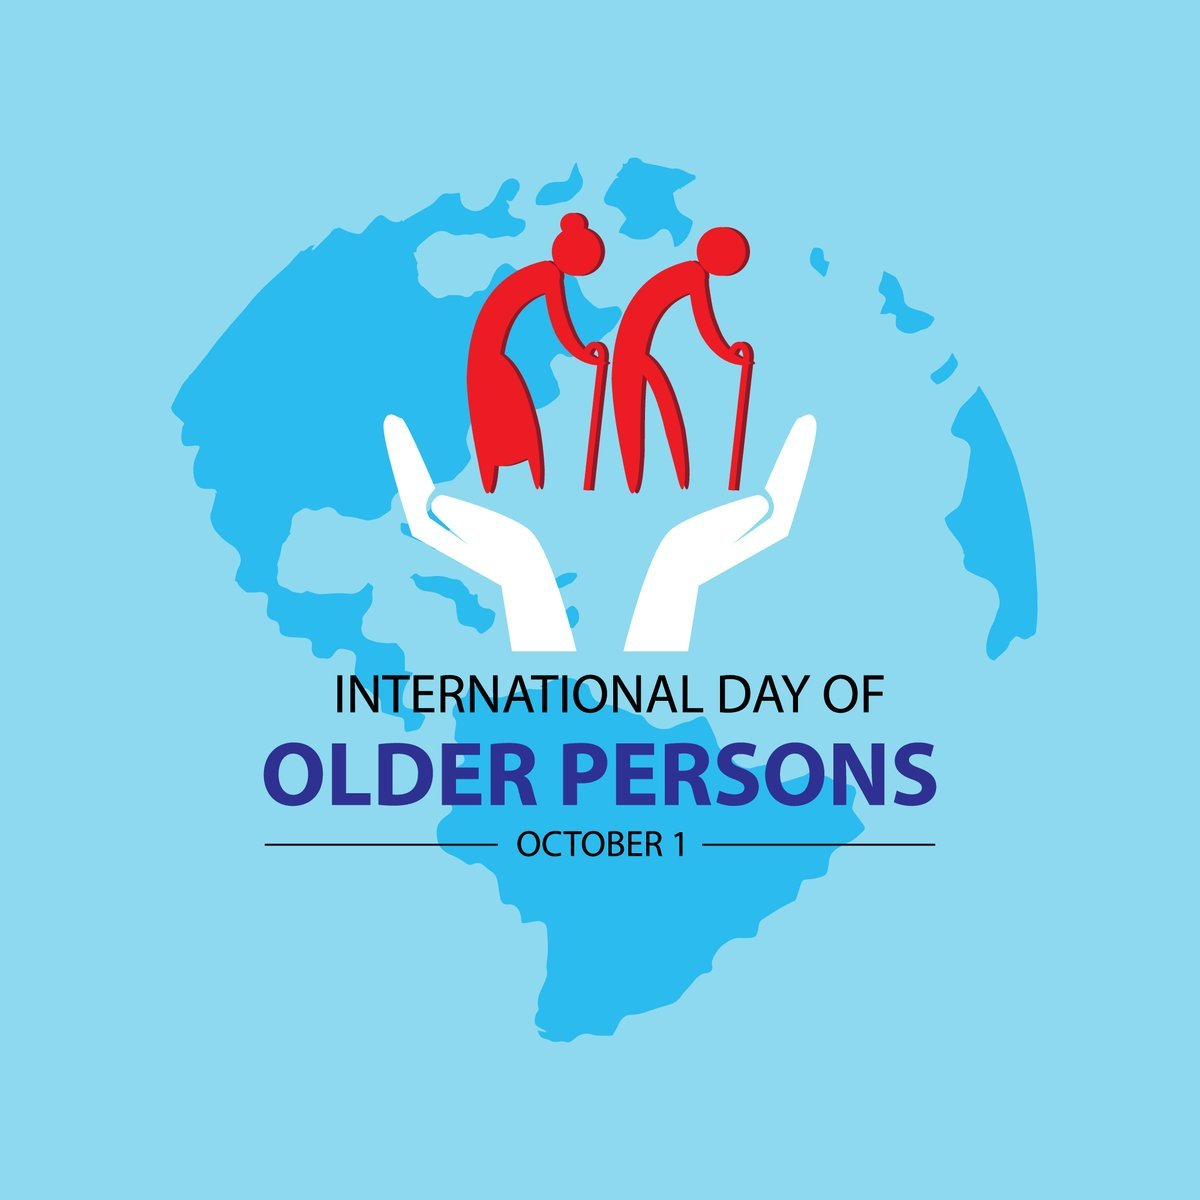 The International Day of Older Persons - Public Health Update